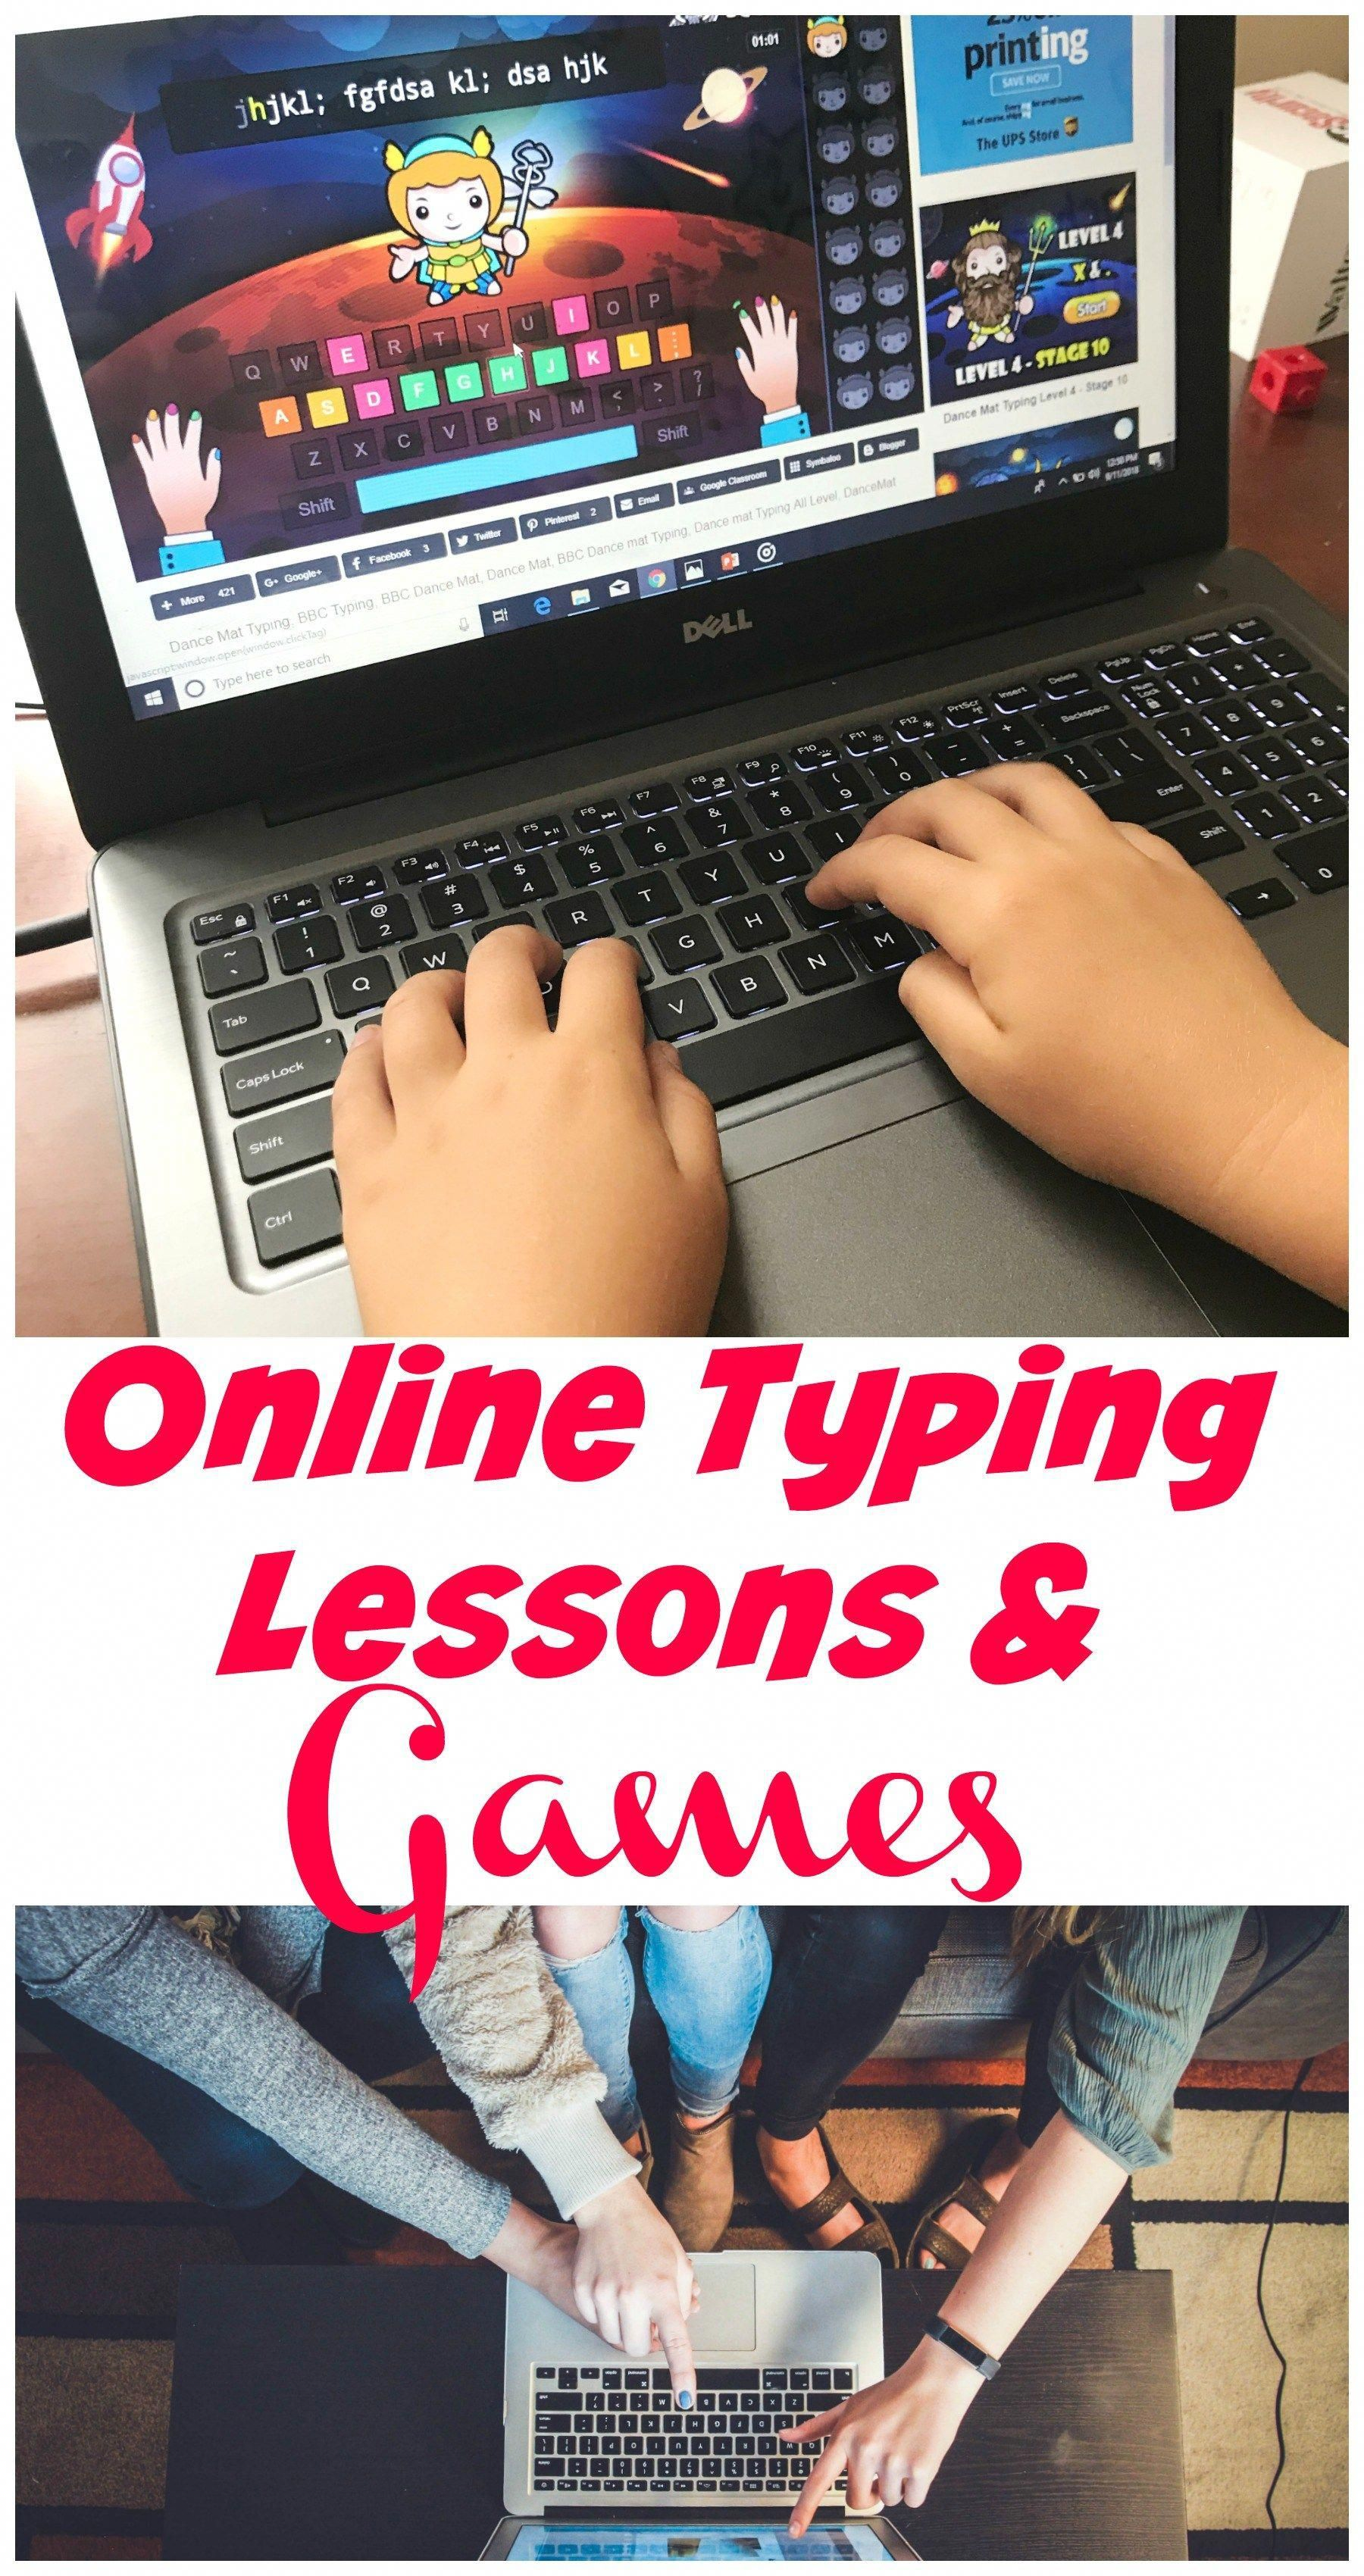 Are you looking for Keyboarding or typing lessons online